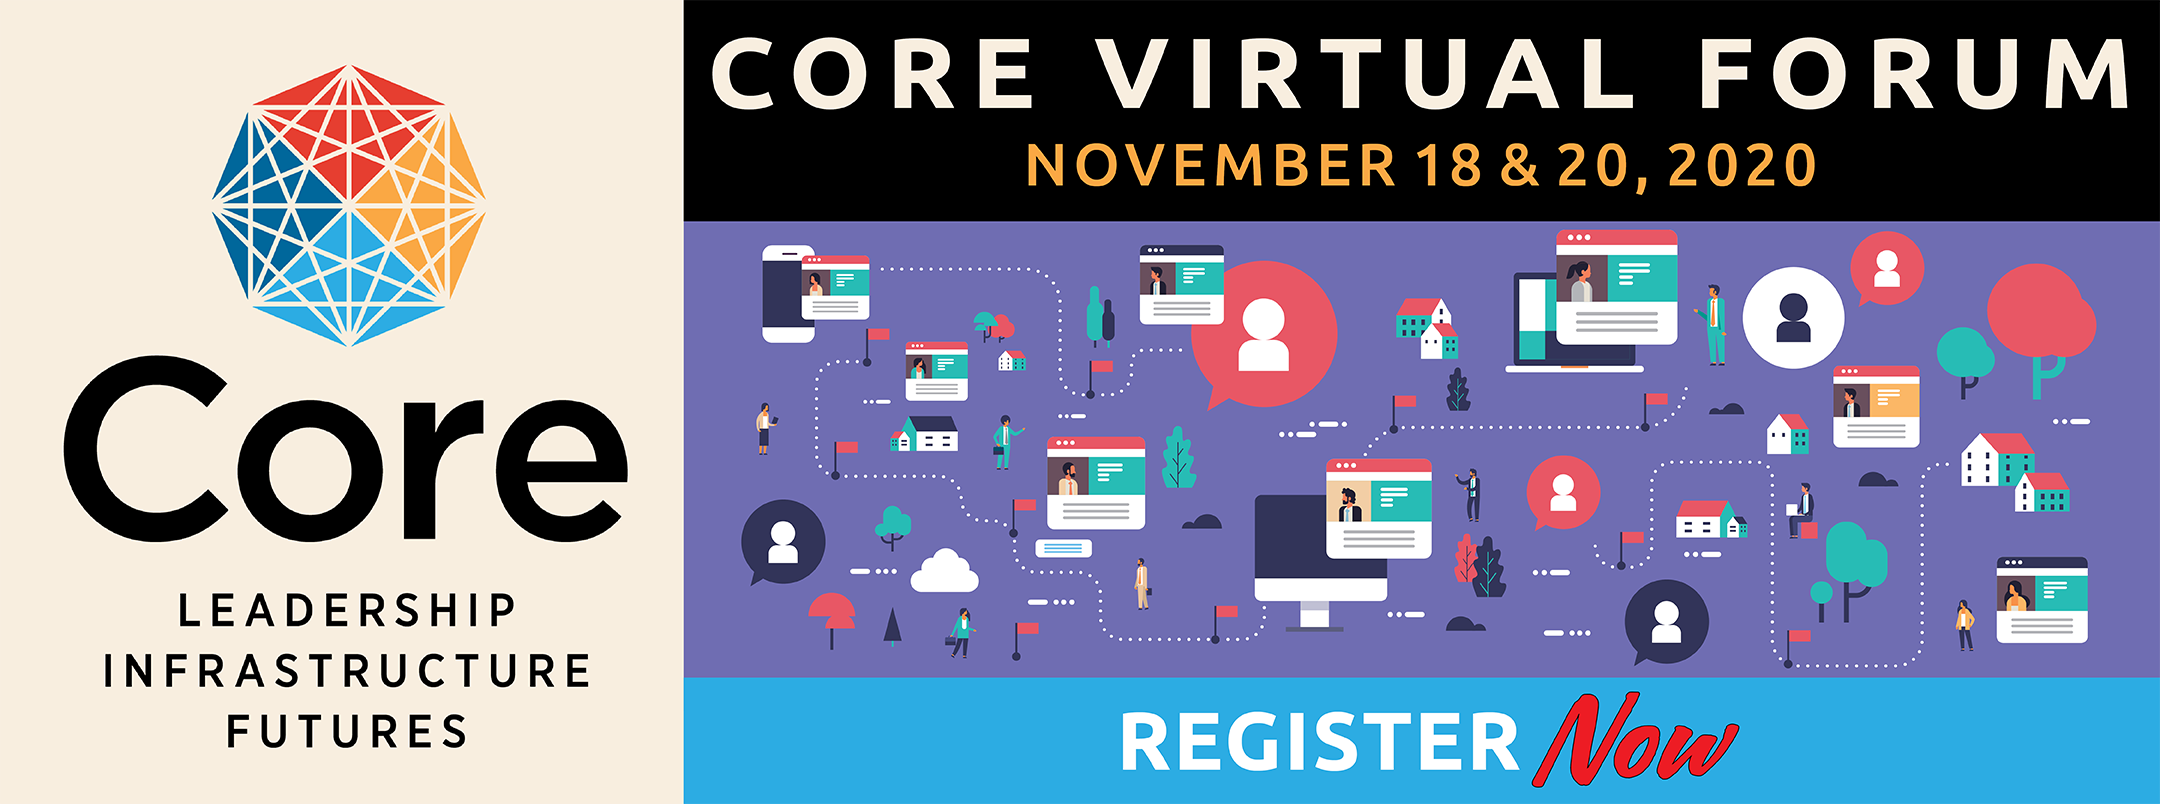 Register for Core Virtual Forum 2020!